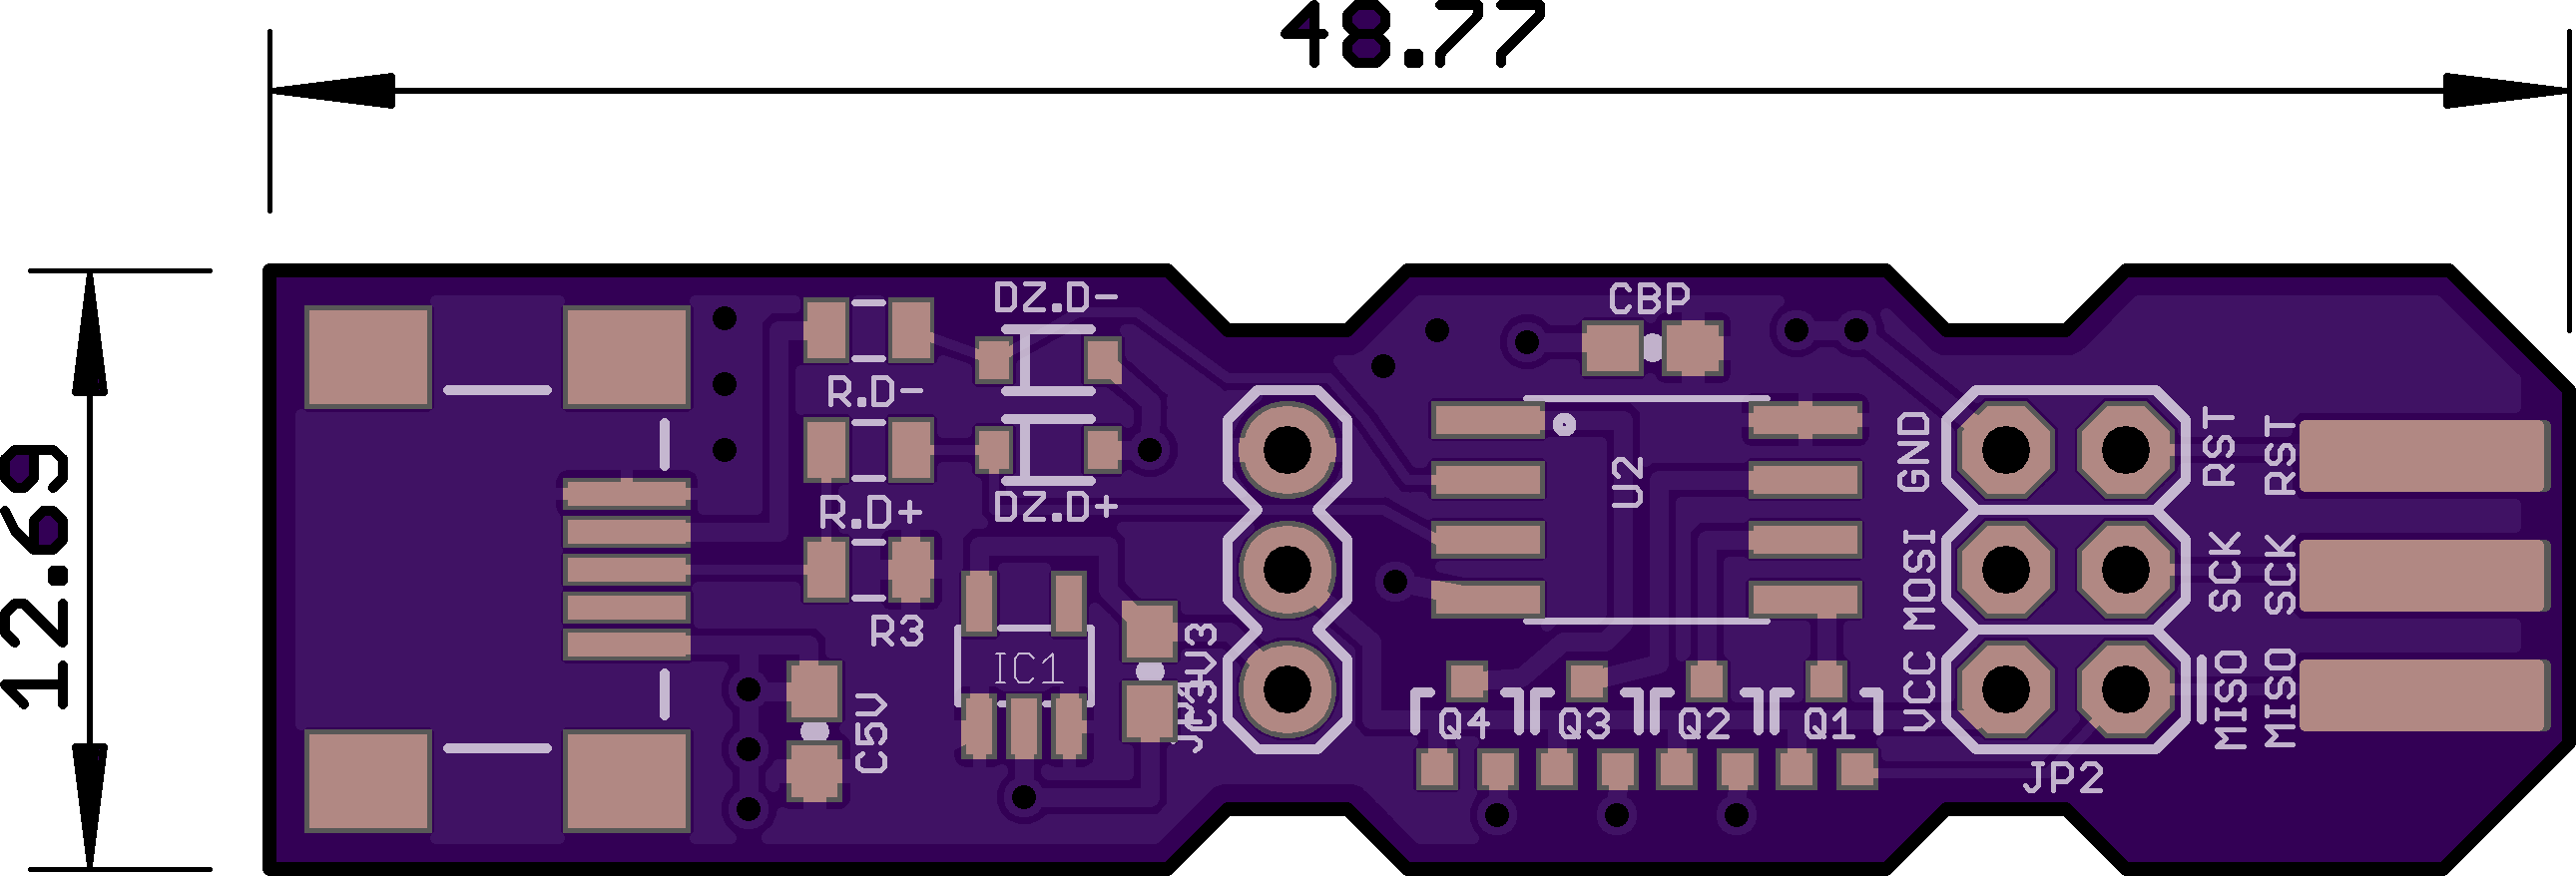 Top preview containing board measurements